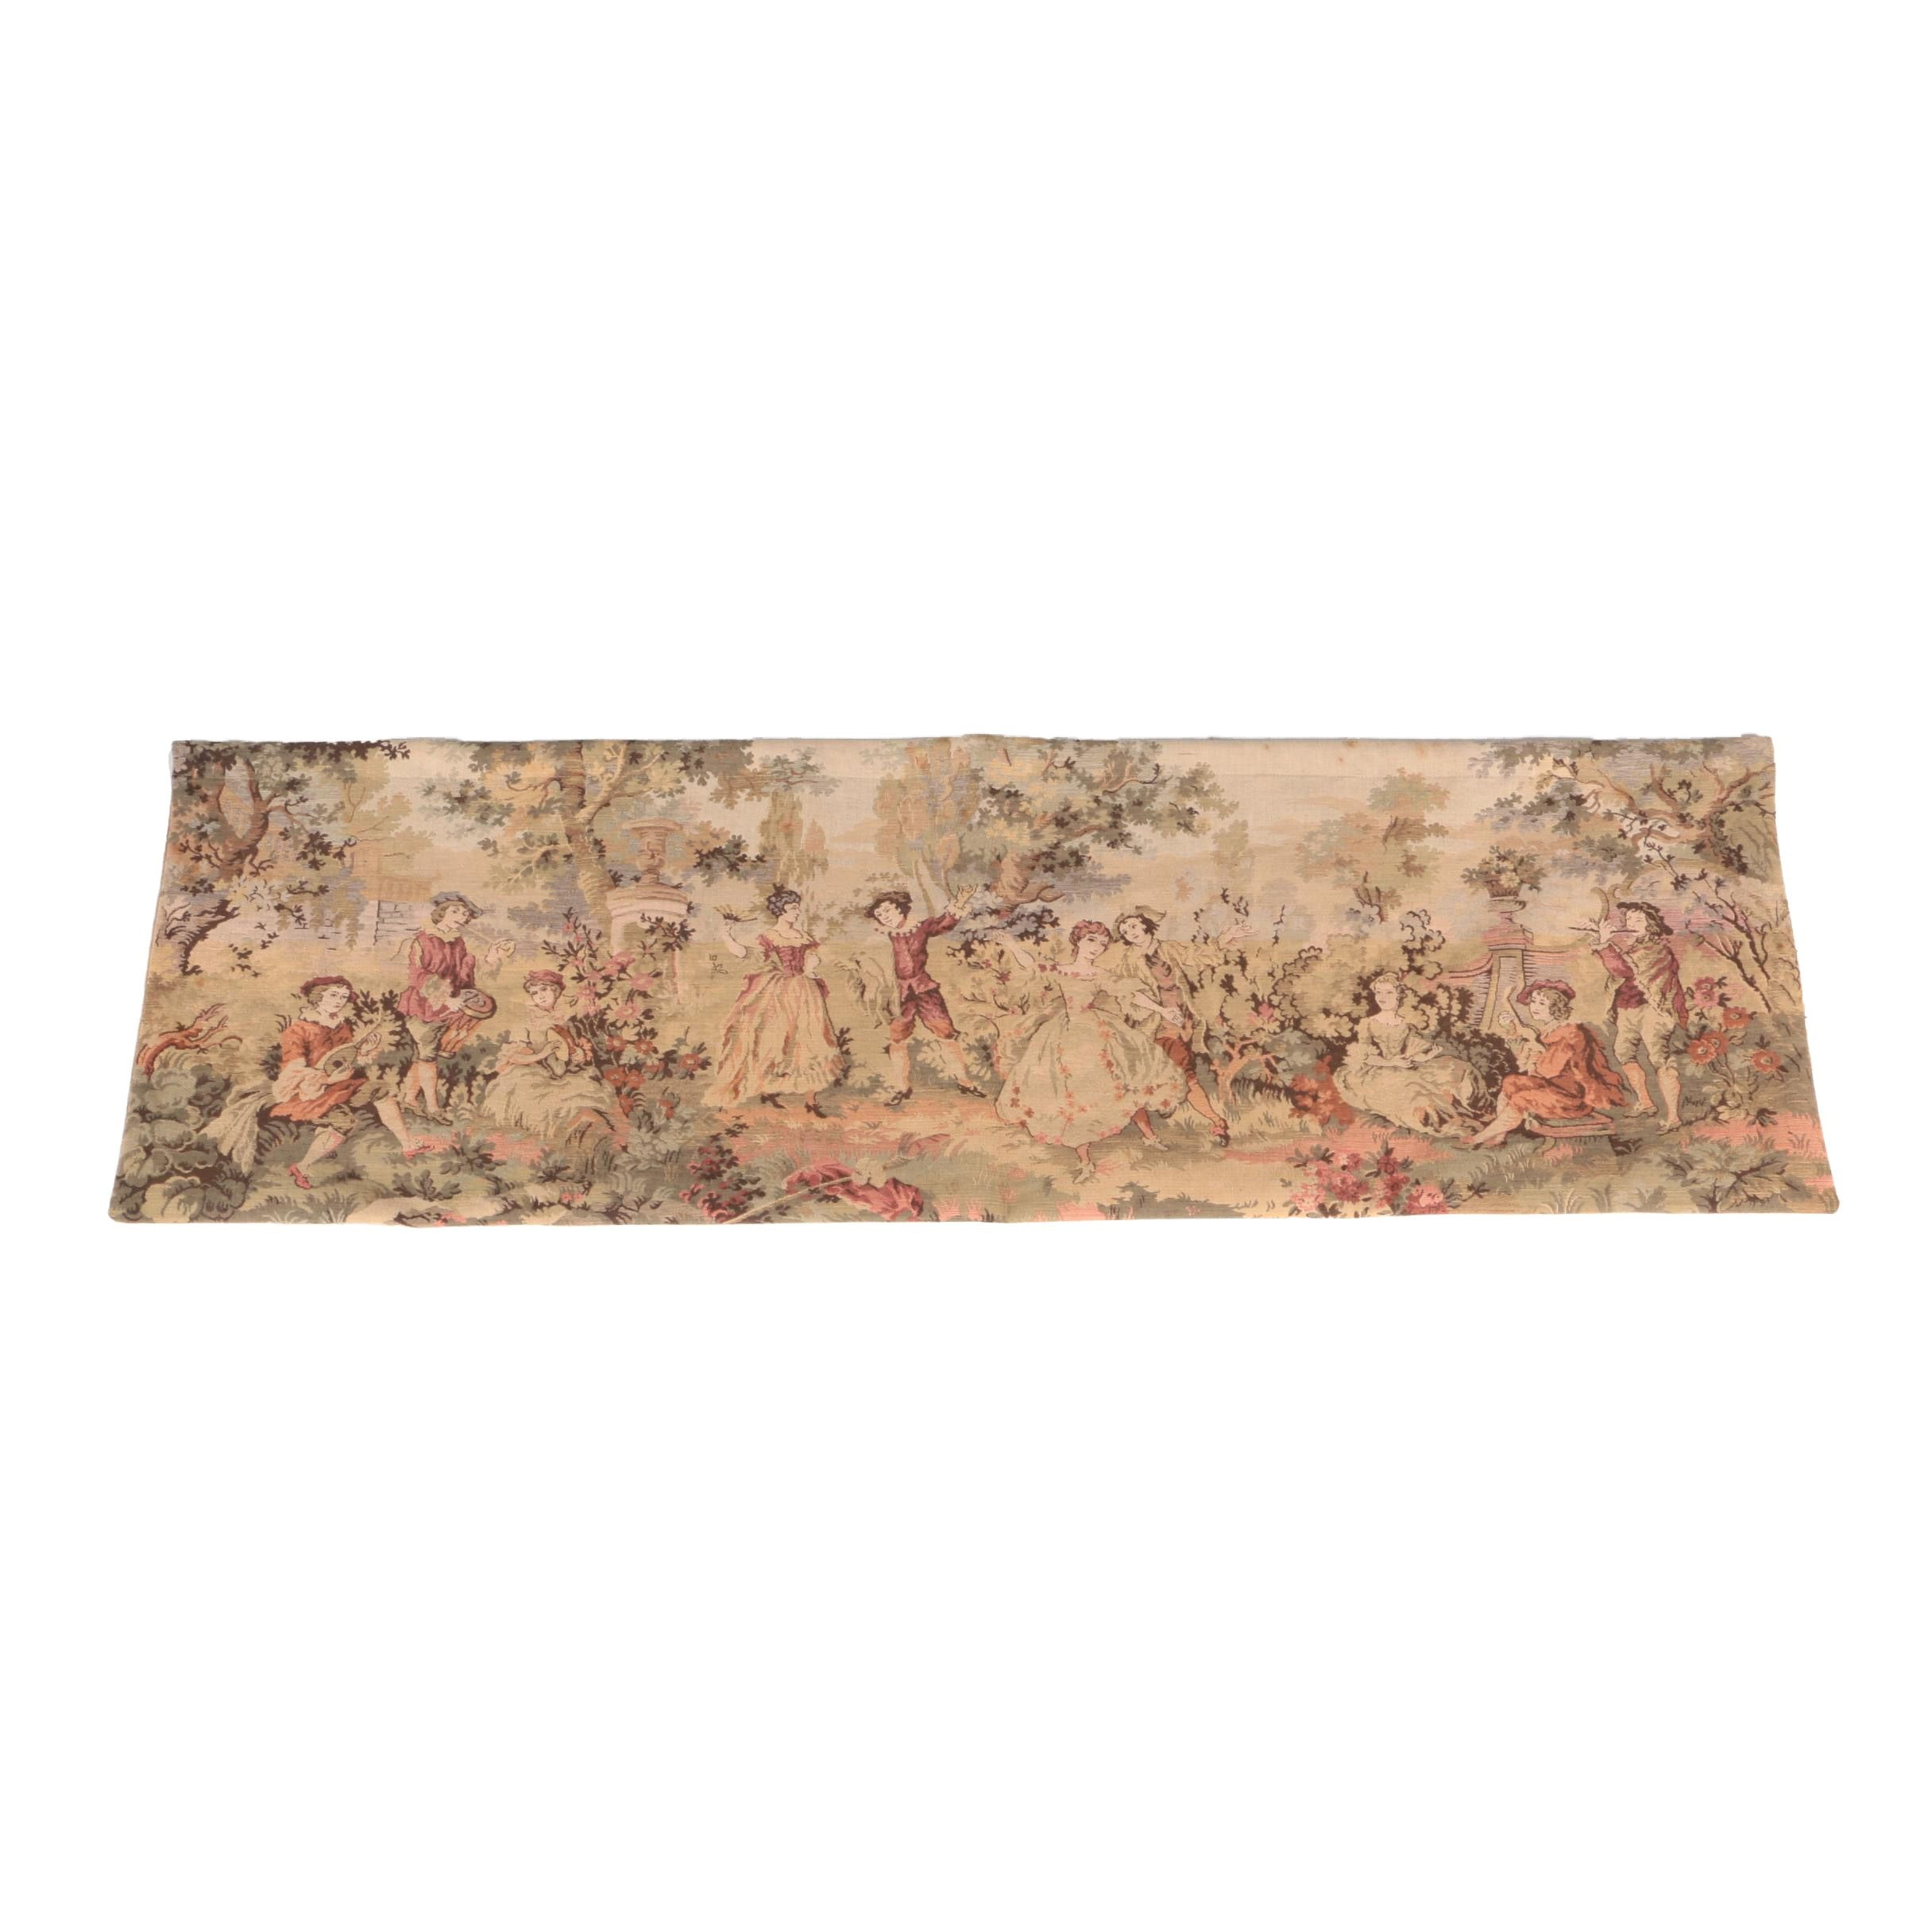 Woven Flanders Style Pictorial Tapestry Wall Hanging